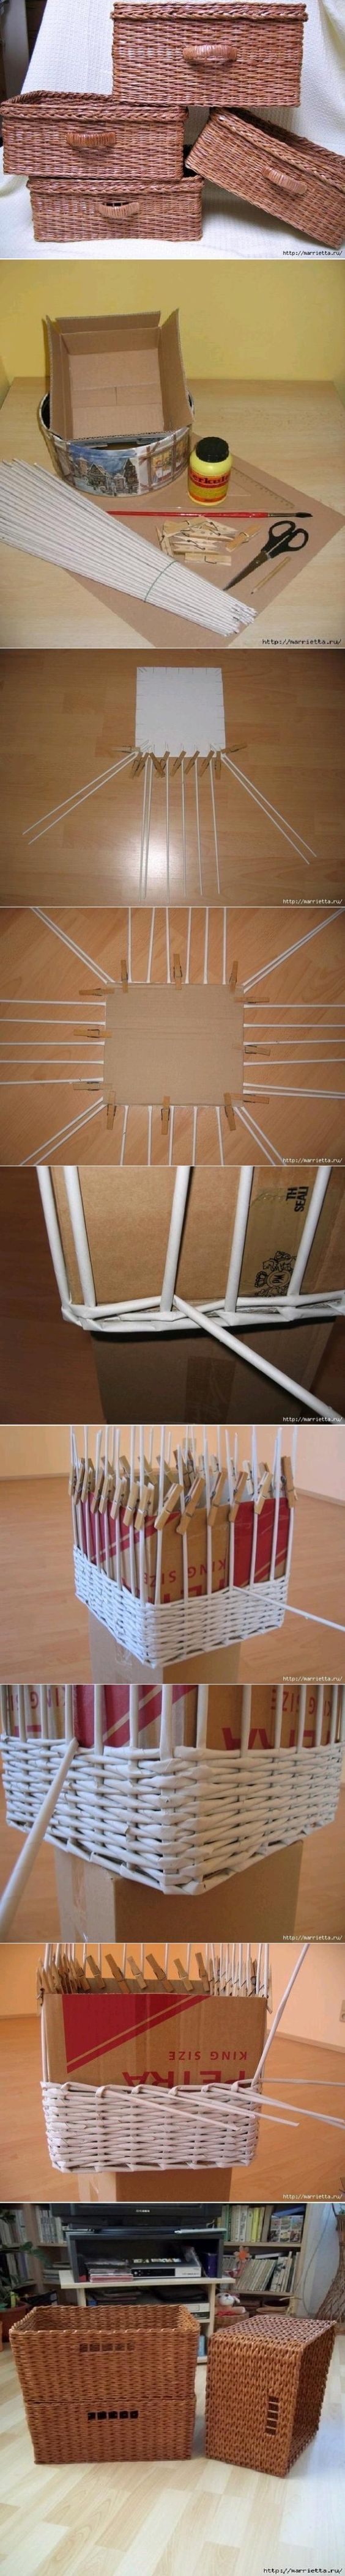 20+ DIY Wonderful and Useful Hacks For Your Home Interior